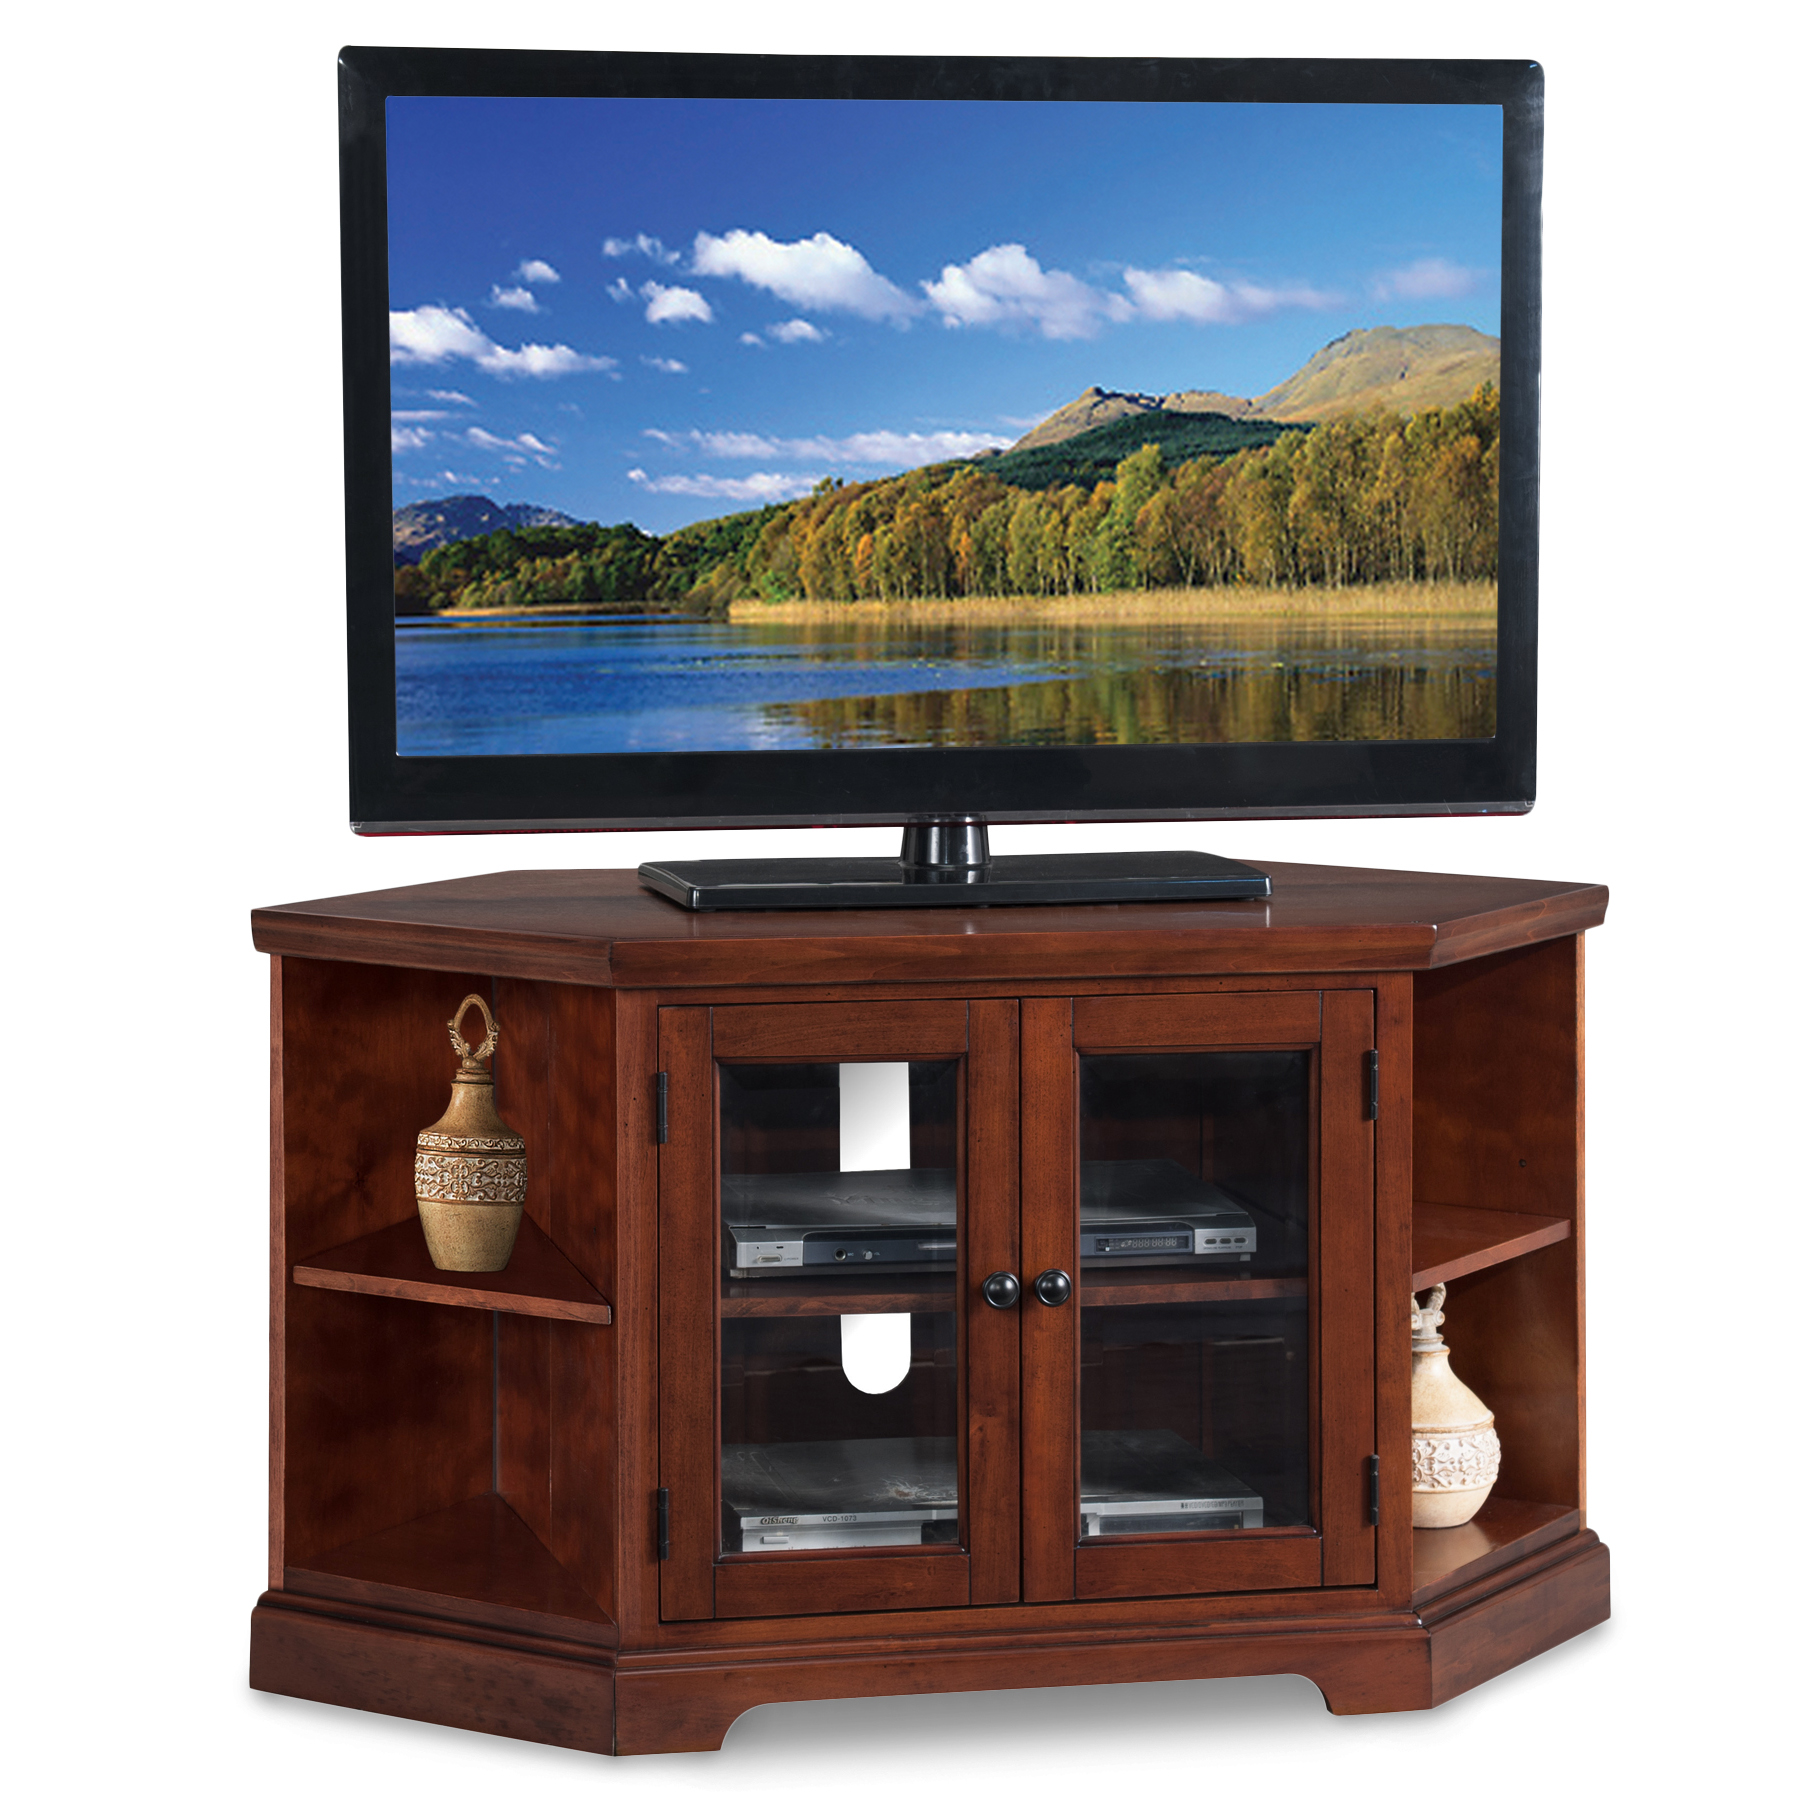 Leick Home Westwood 46 Corner Tv Stand W Bookcases For Tv S Up To